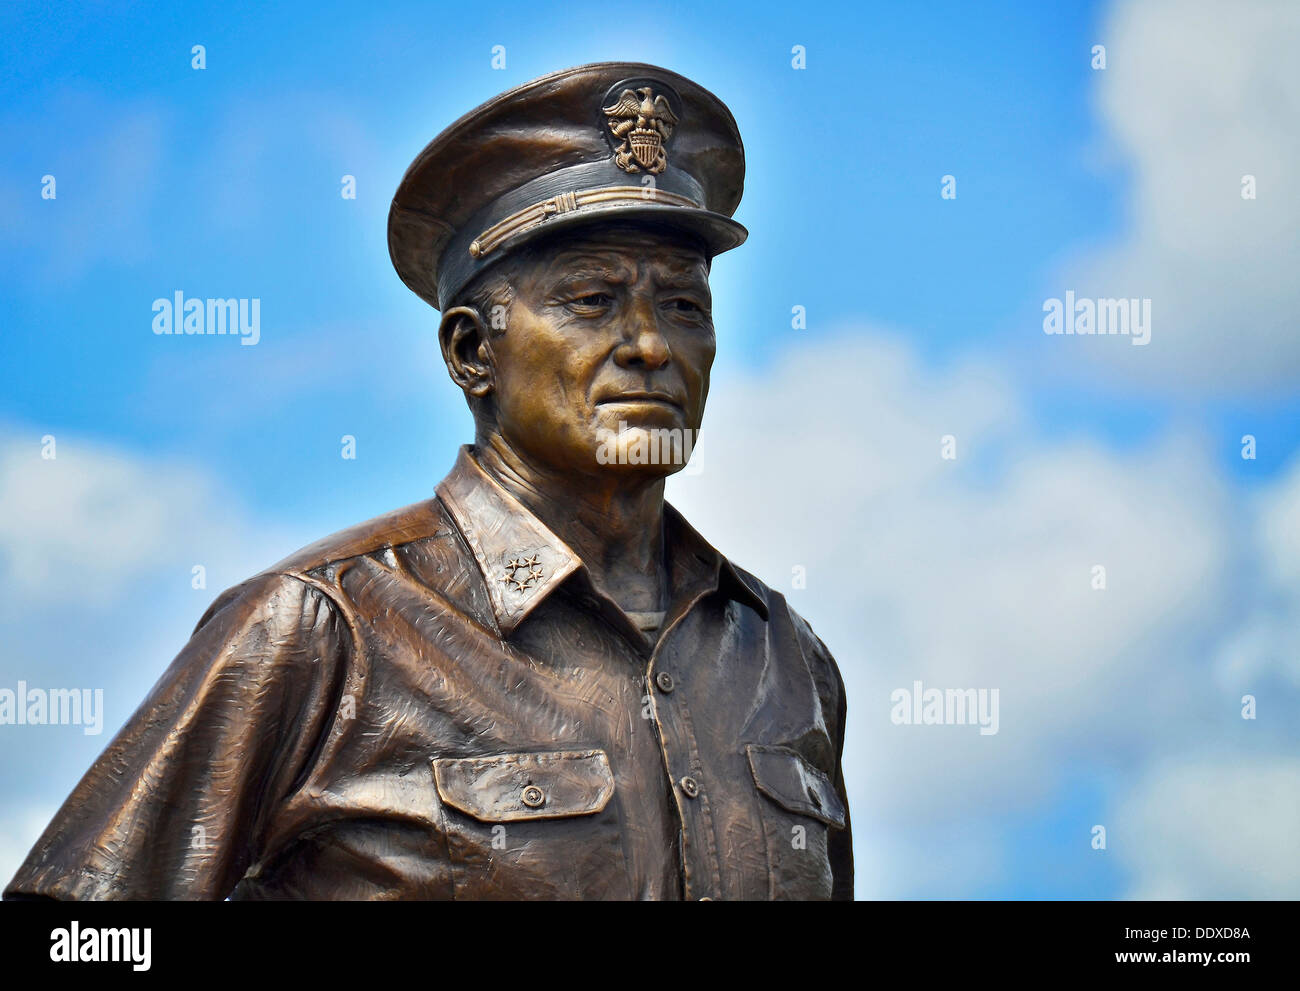 A 9-foot tall bronze statue of Fleet Adm. Chester Nimitz is unveiled at a statue dedication ceremony in front of - Stock Image